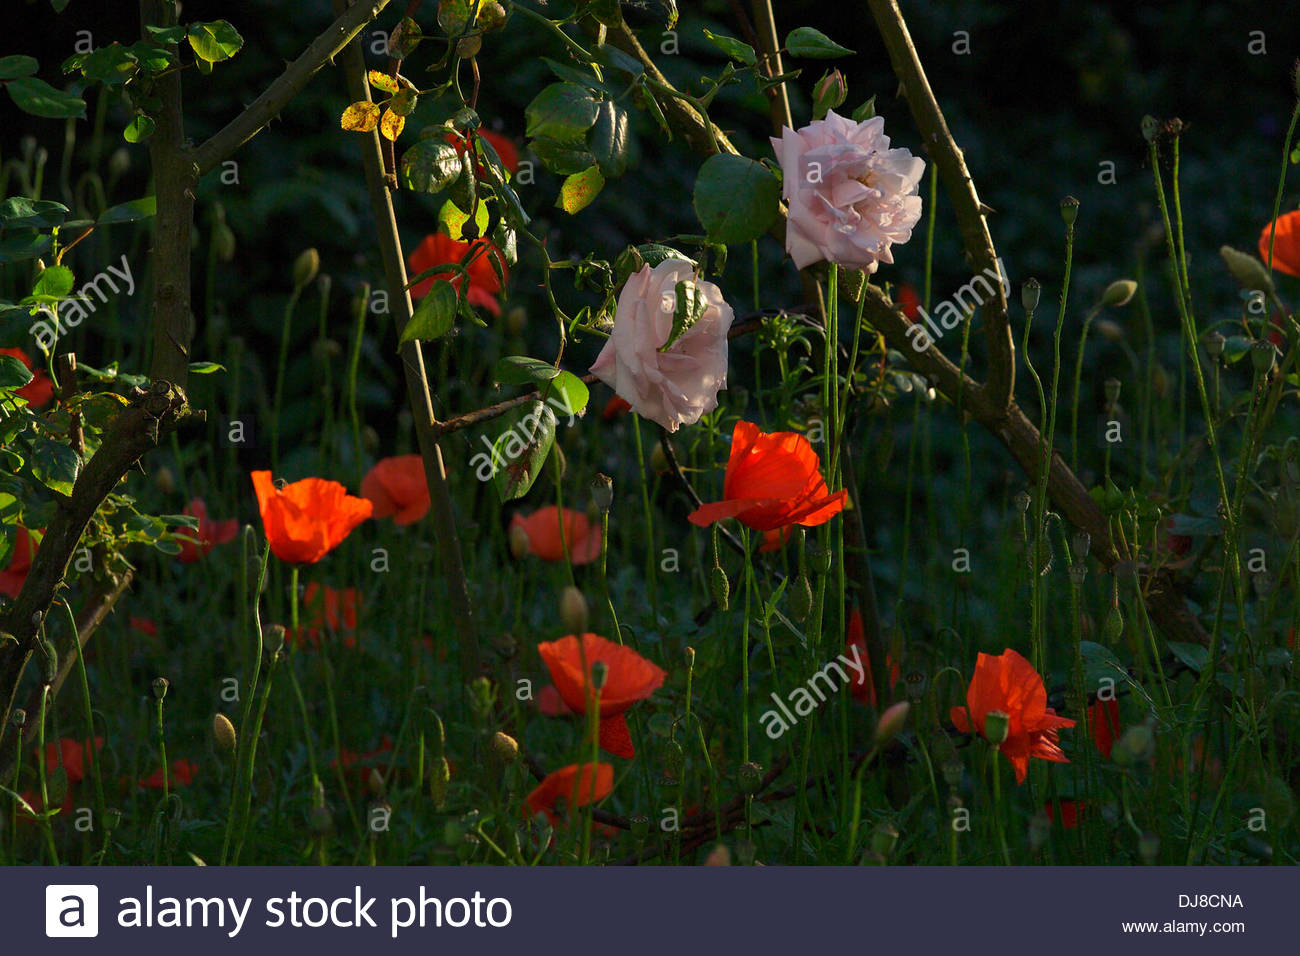 Pink Roses And Red Poppies Stock Photo – Alamy Intended For Wilde Poppies Ceramic Garden Stools (View 20 of 25)